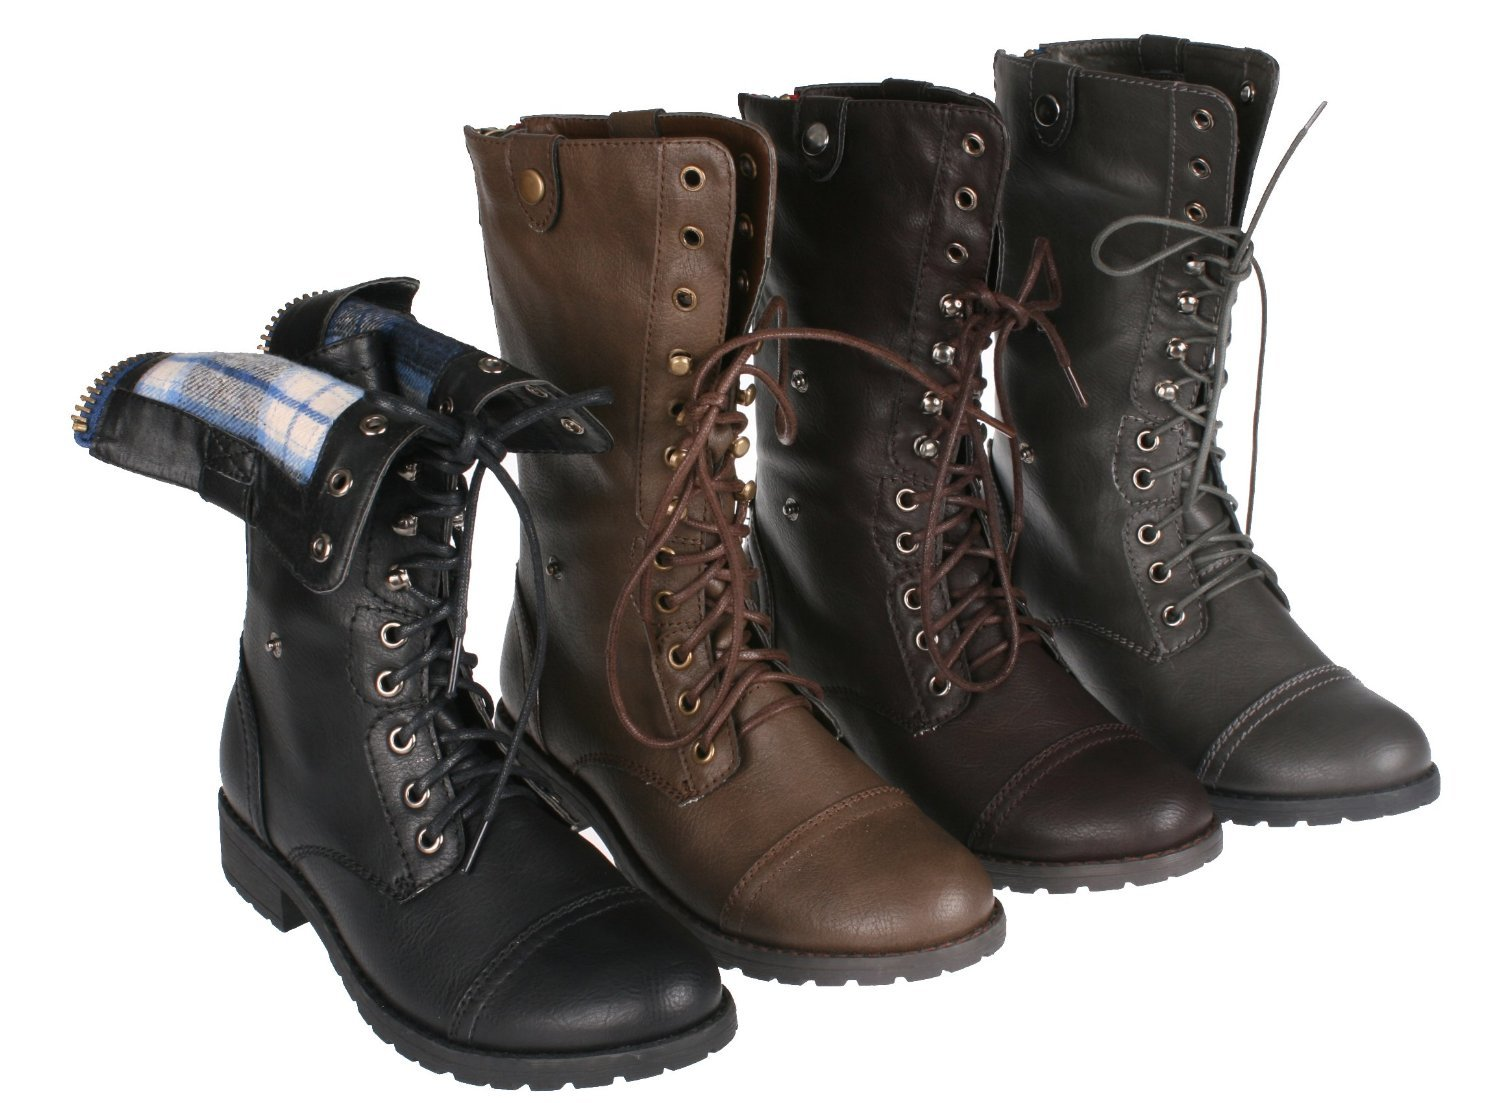 Combat Boots For Girls Cheap CaDUqJSg